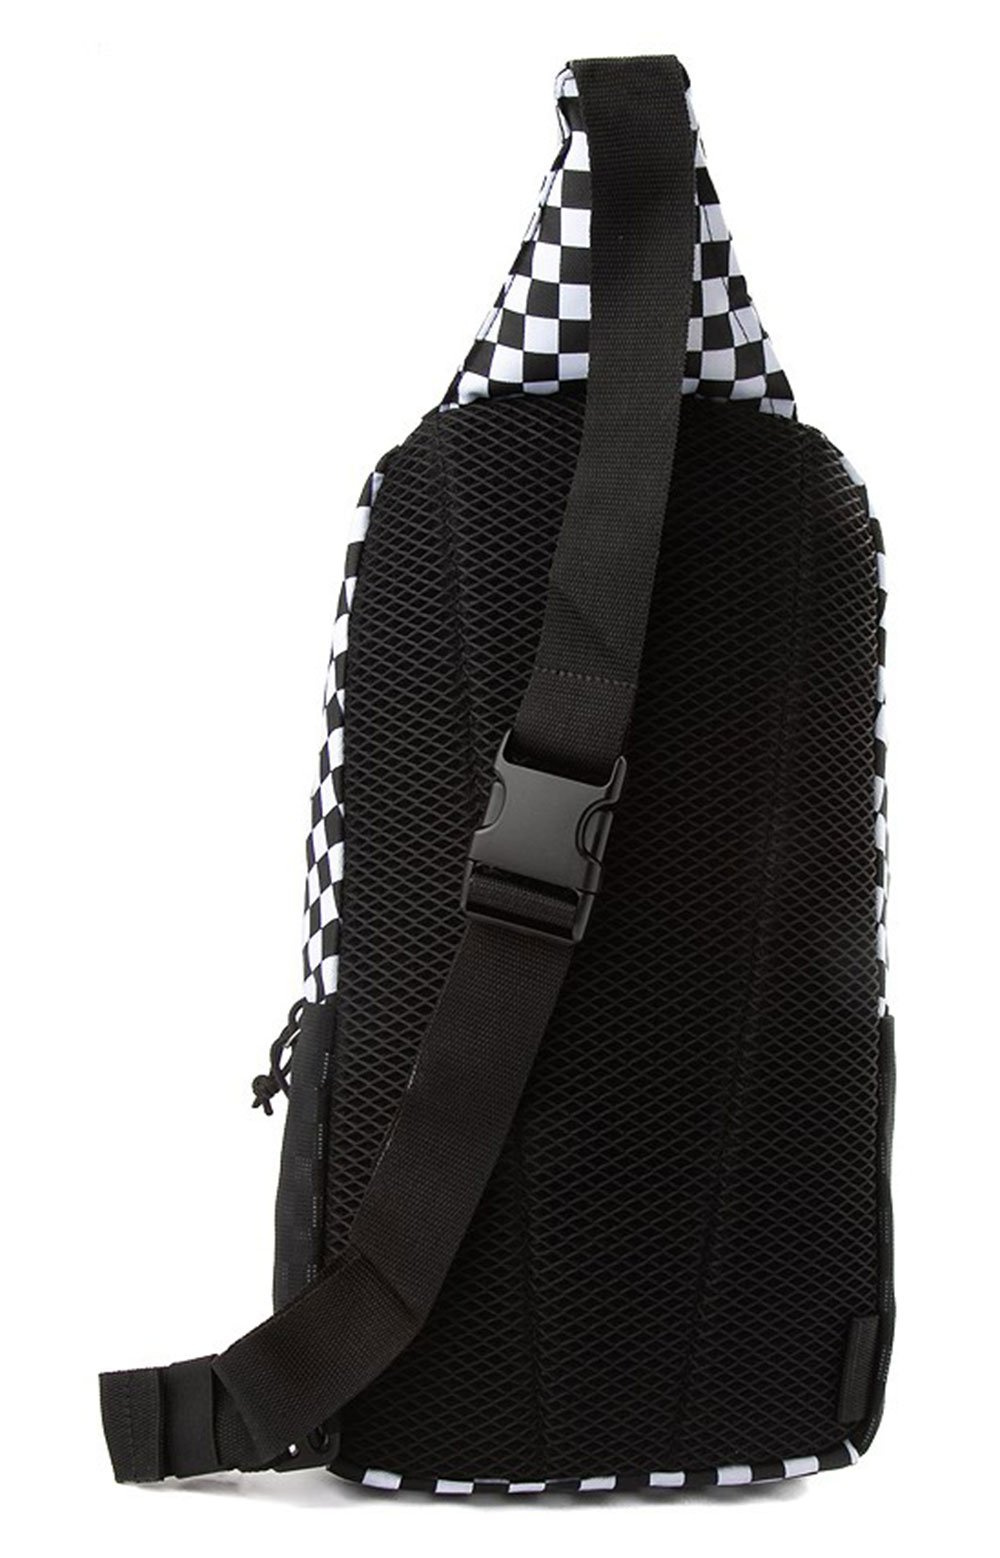 Warp Sling Bag - Black/White 2